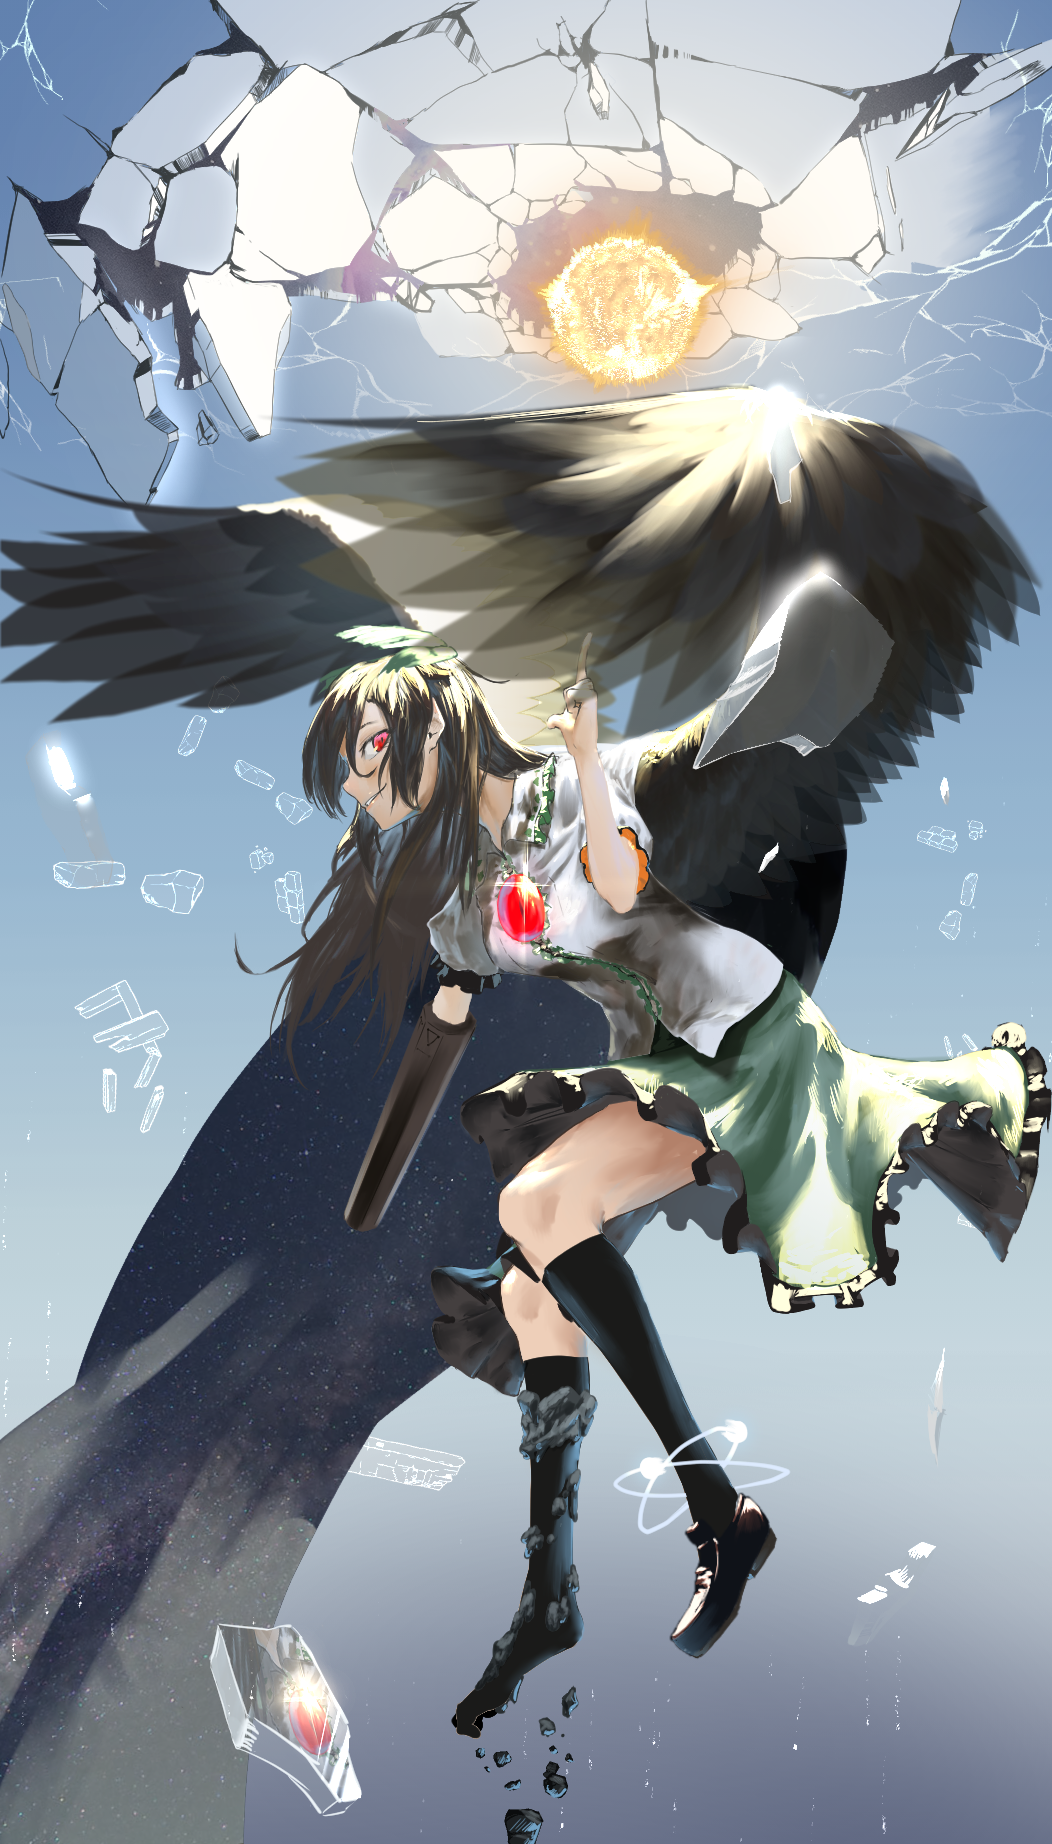 arm_cannon asymmetrical_footwear atom bird_wings black_legwear black_wings blouse bow brown_hair cape capelet collared_blouse control_rod crack floating frilled_skirt frills from_side full_body green_bow green_skirt grin hair_bow hand_up highres index_finger_raised leaning_forward long_hair looking_at_viewer looking_to_the_side medium_skirt mismatched_footwear namusan1146 outstretched_arm red_eyes reiuji_utsuho shoes short_sleeves sidelocks single_shoe skirt smile smirk socks starry_sky_print sun third_eye touhou weapon white_blouse white_cape wing_collar wings